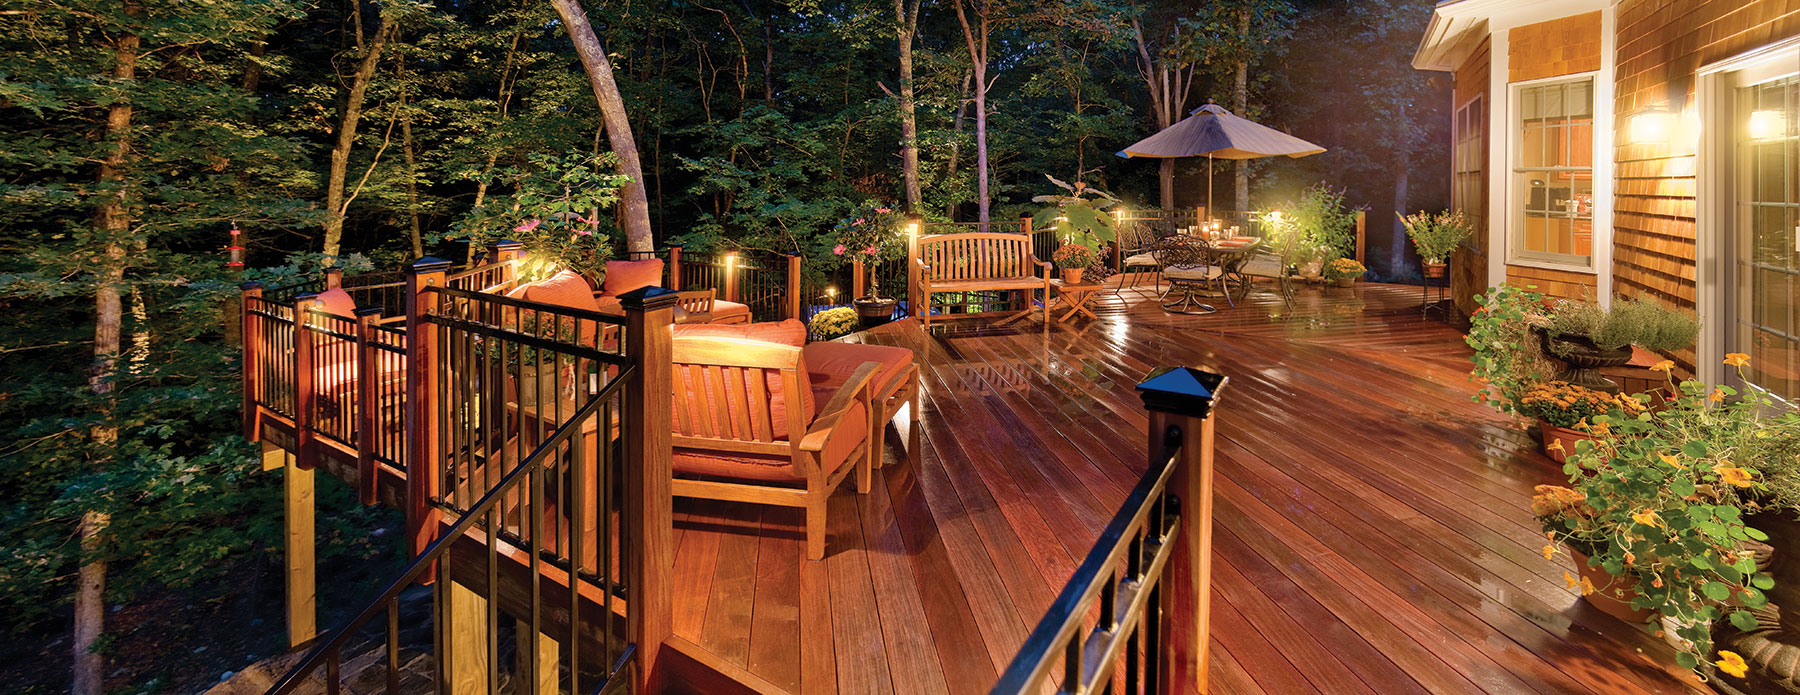 Beau Seattle Deck Lighting